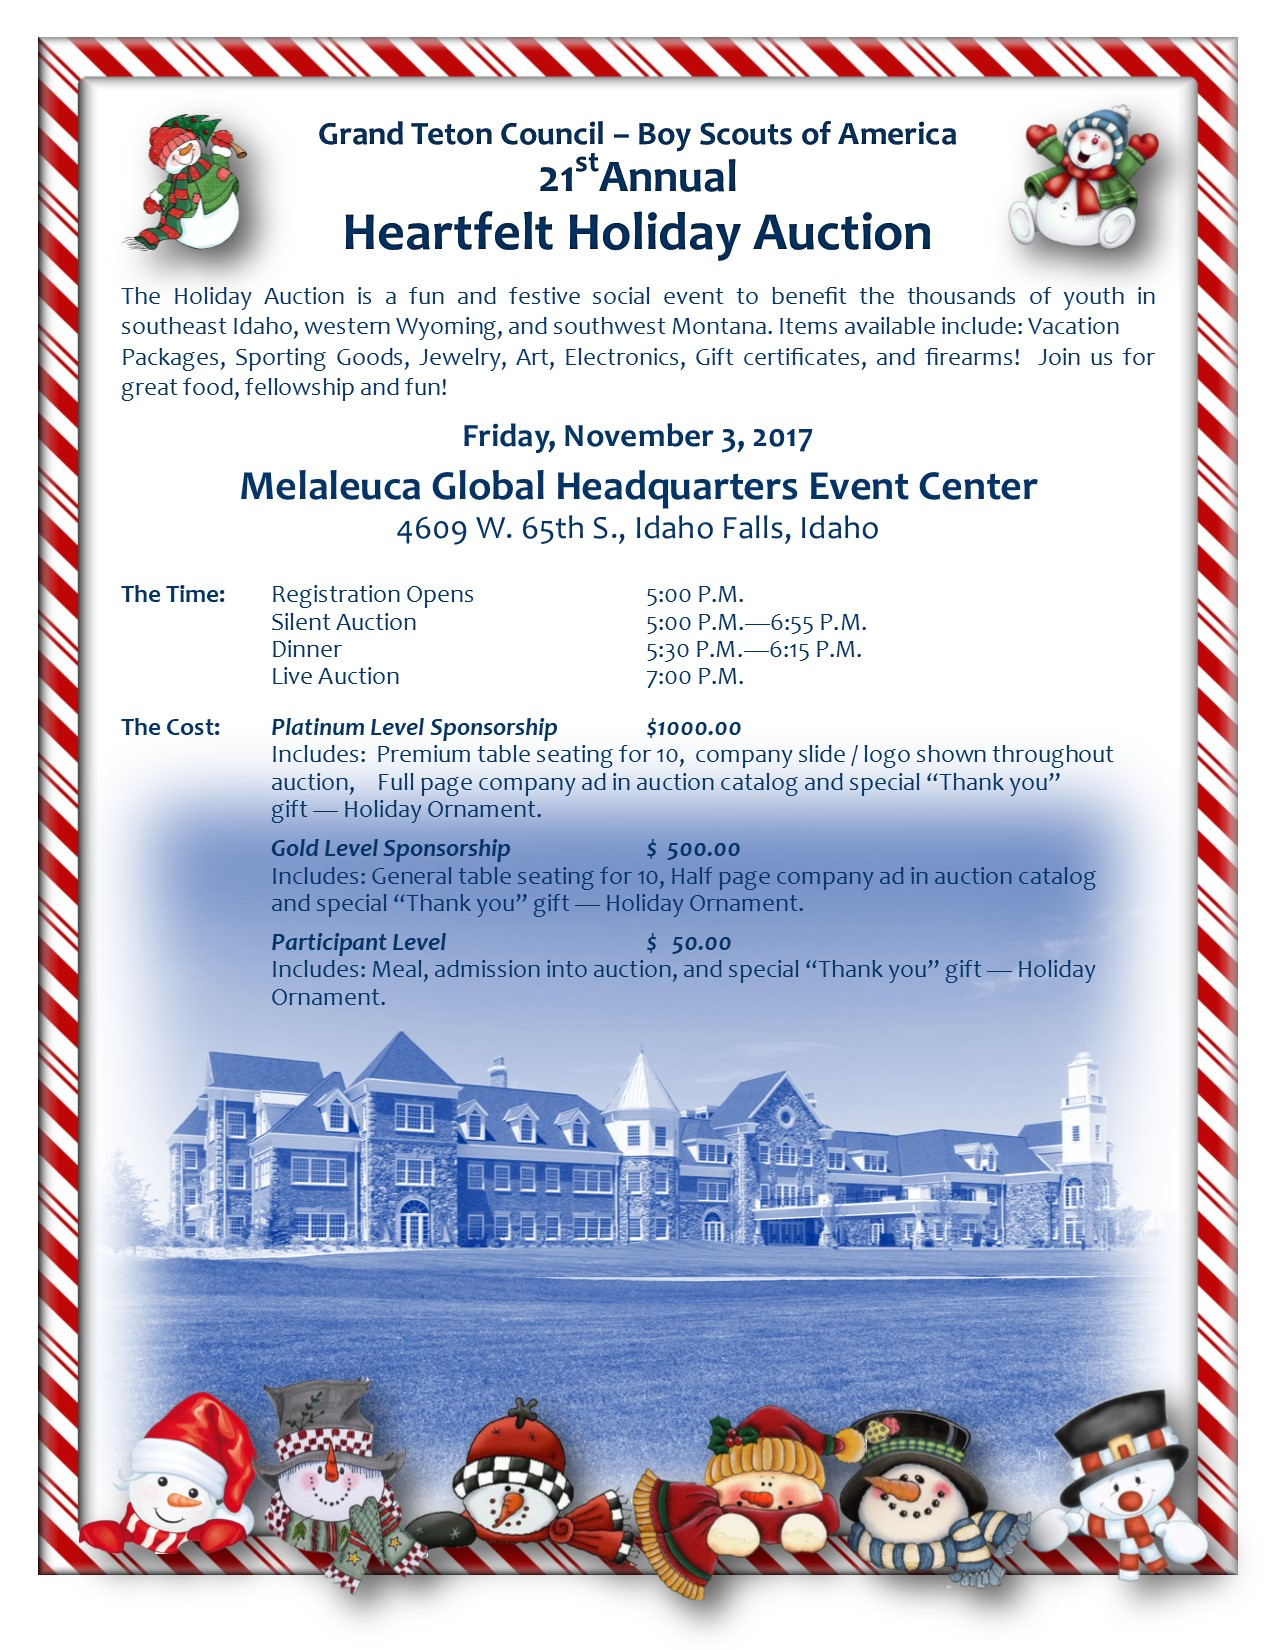 2017 grand teton council holiday auction